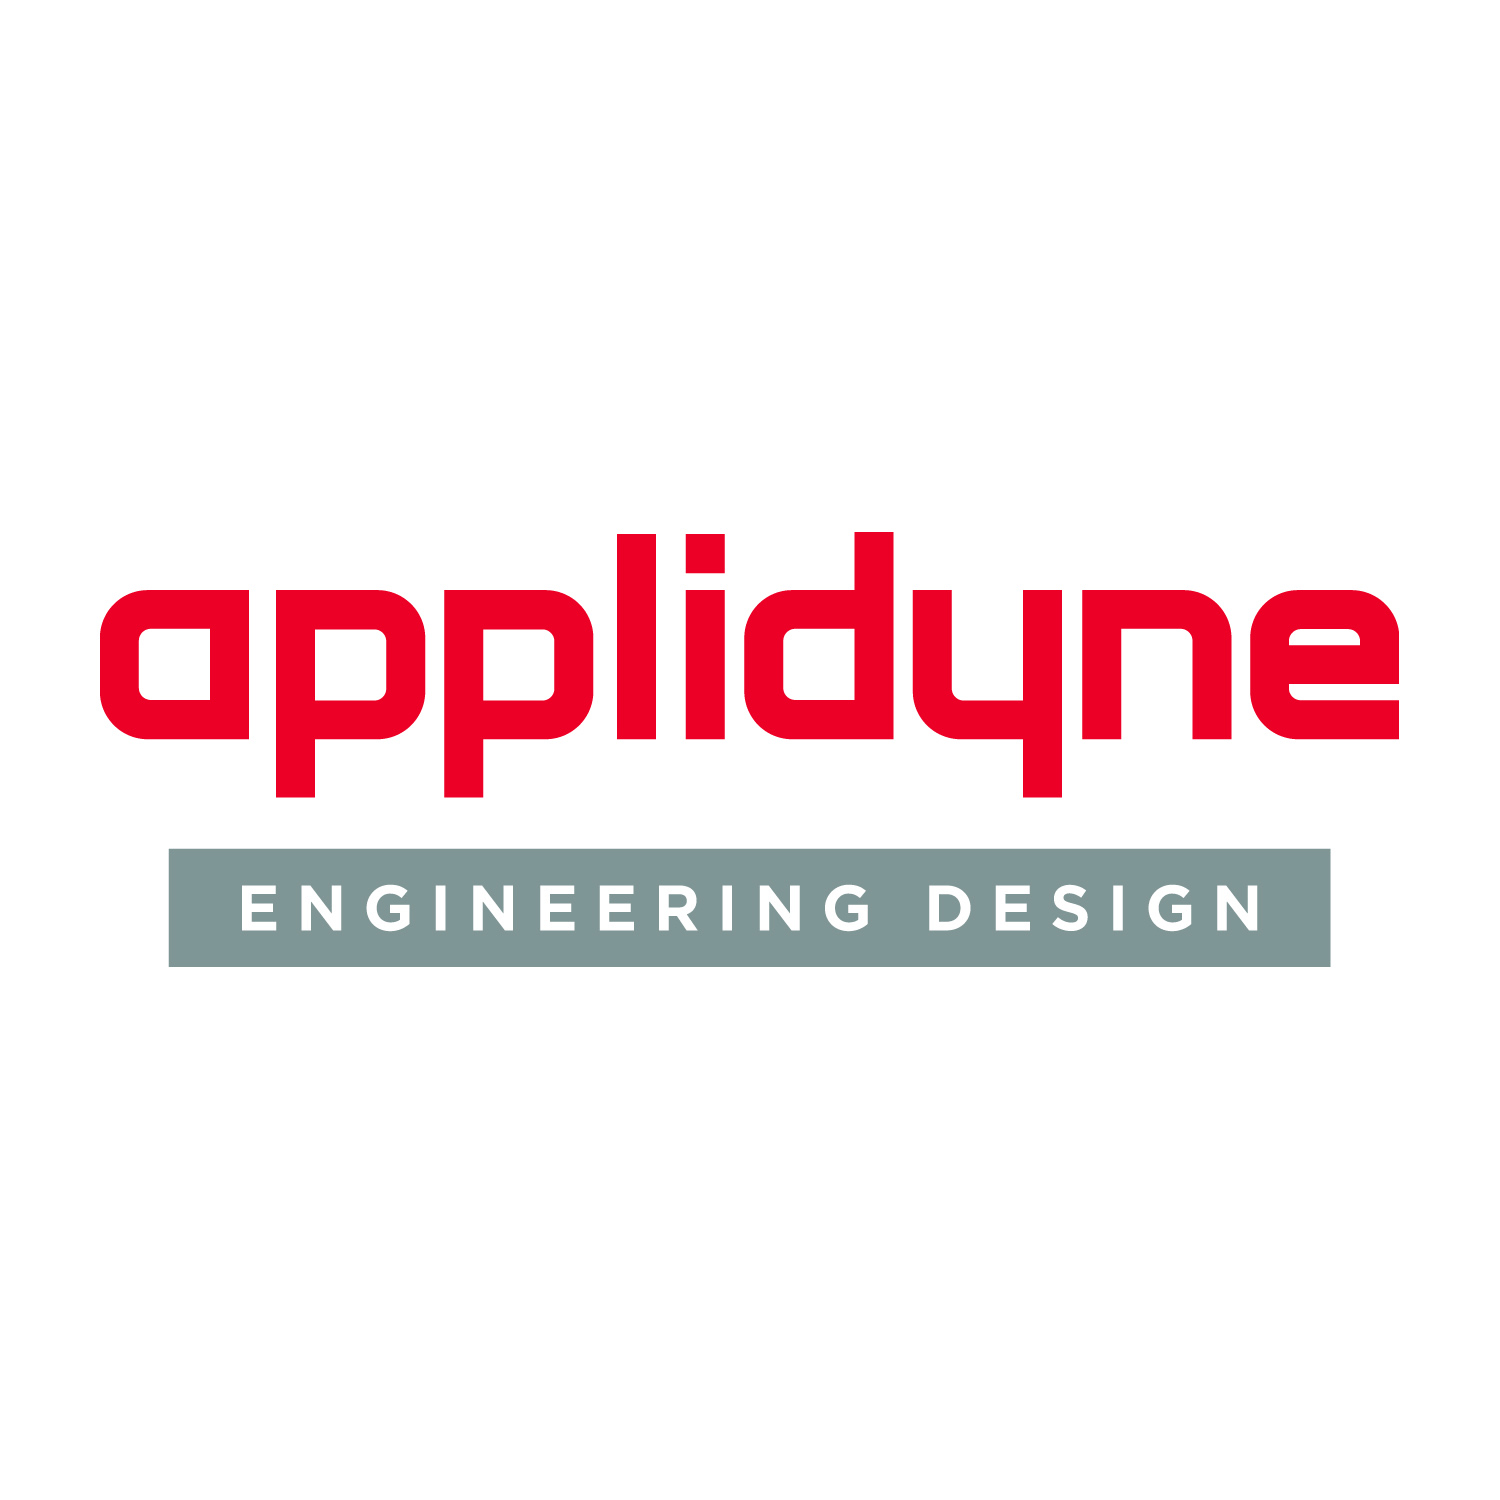 2012 Applidyne Engineering Design Scholarships